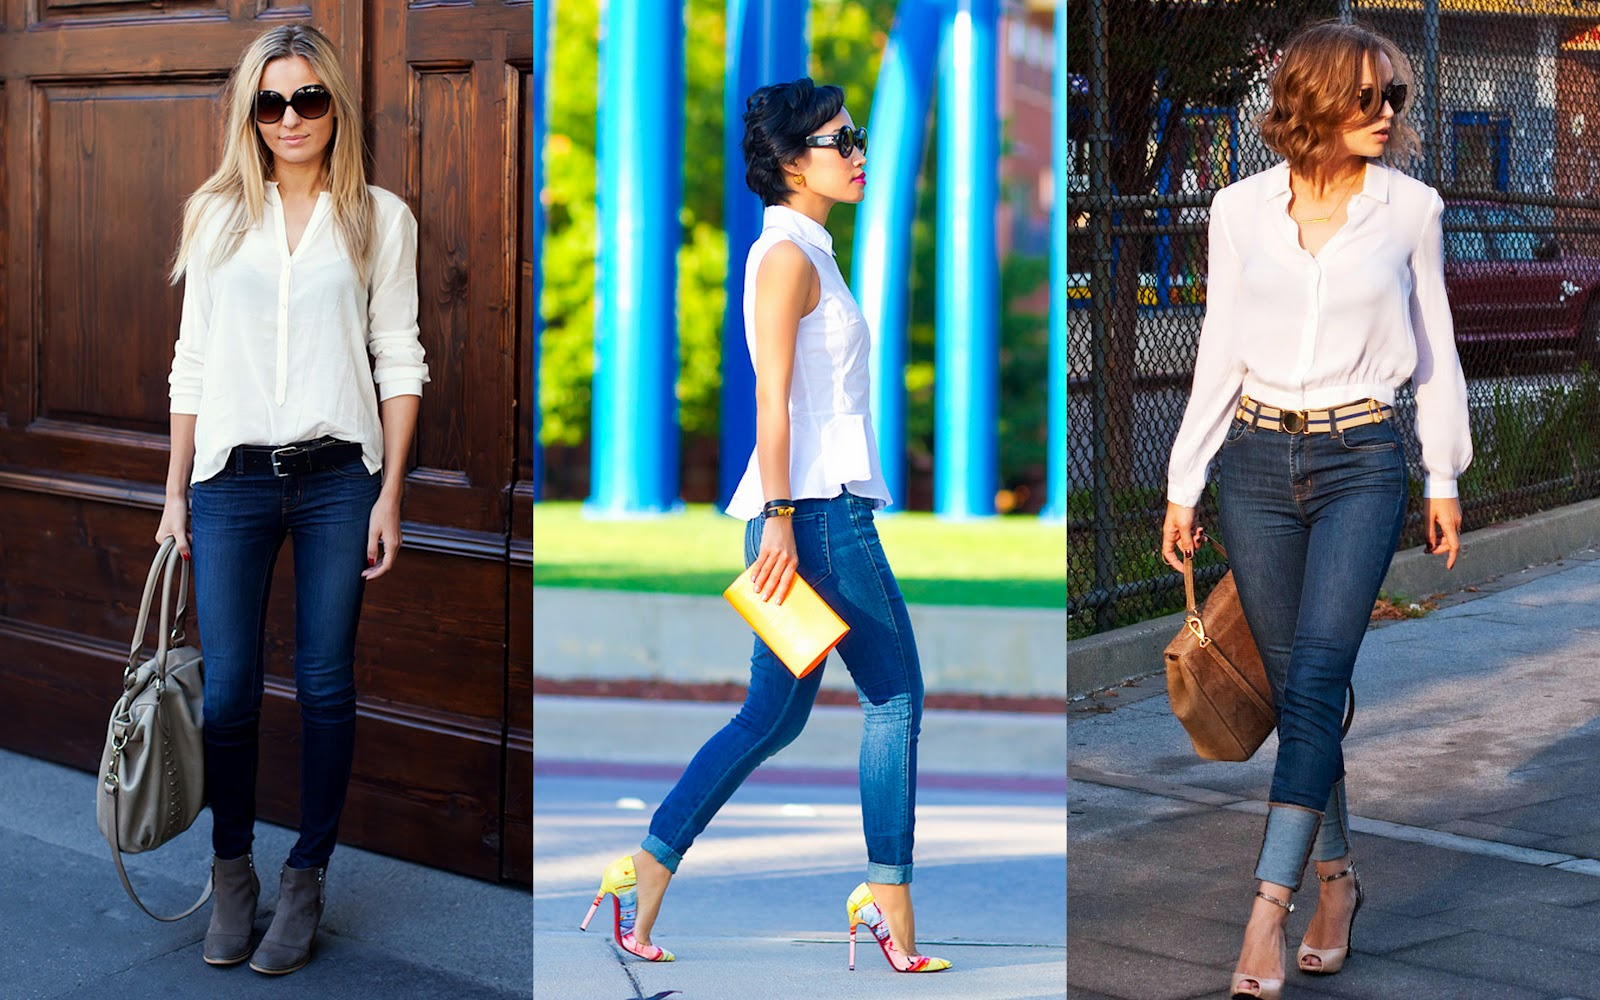 How To Dress Up A White Shirt | Is Shirt